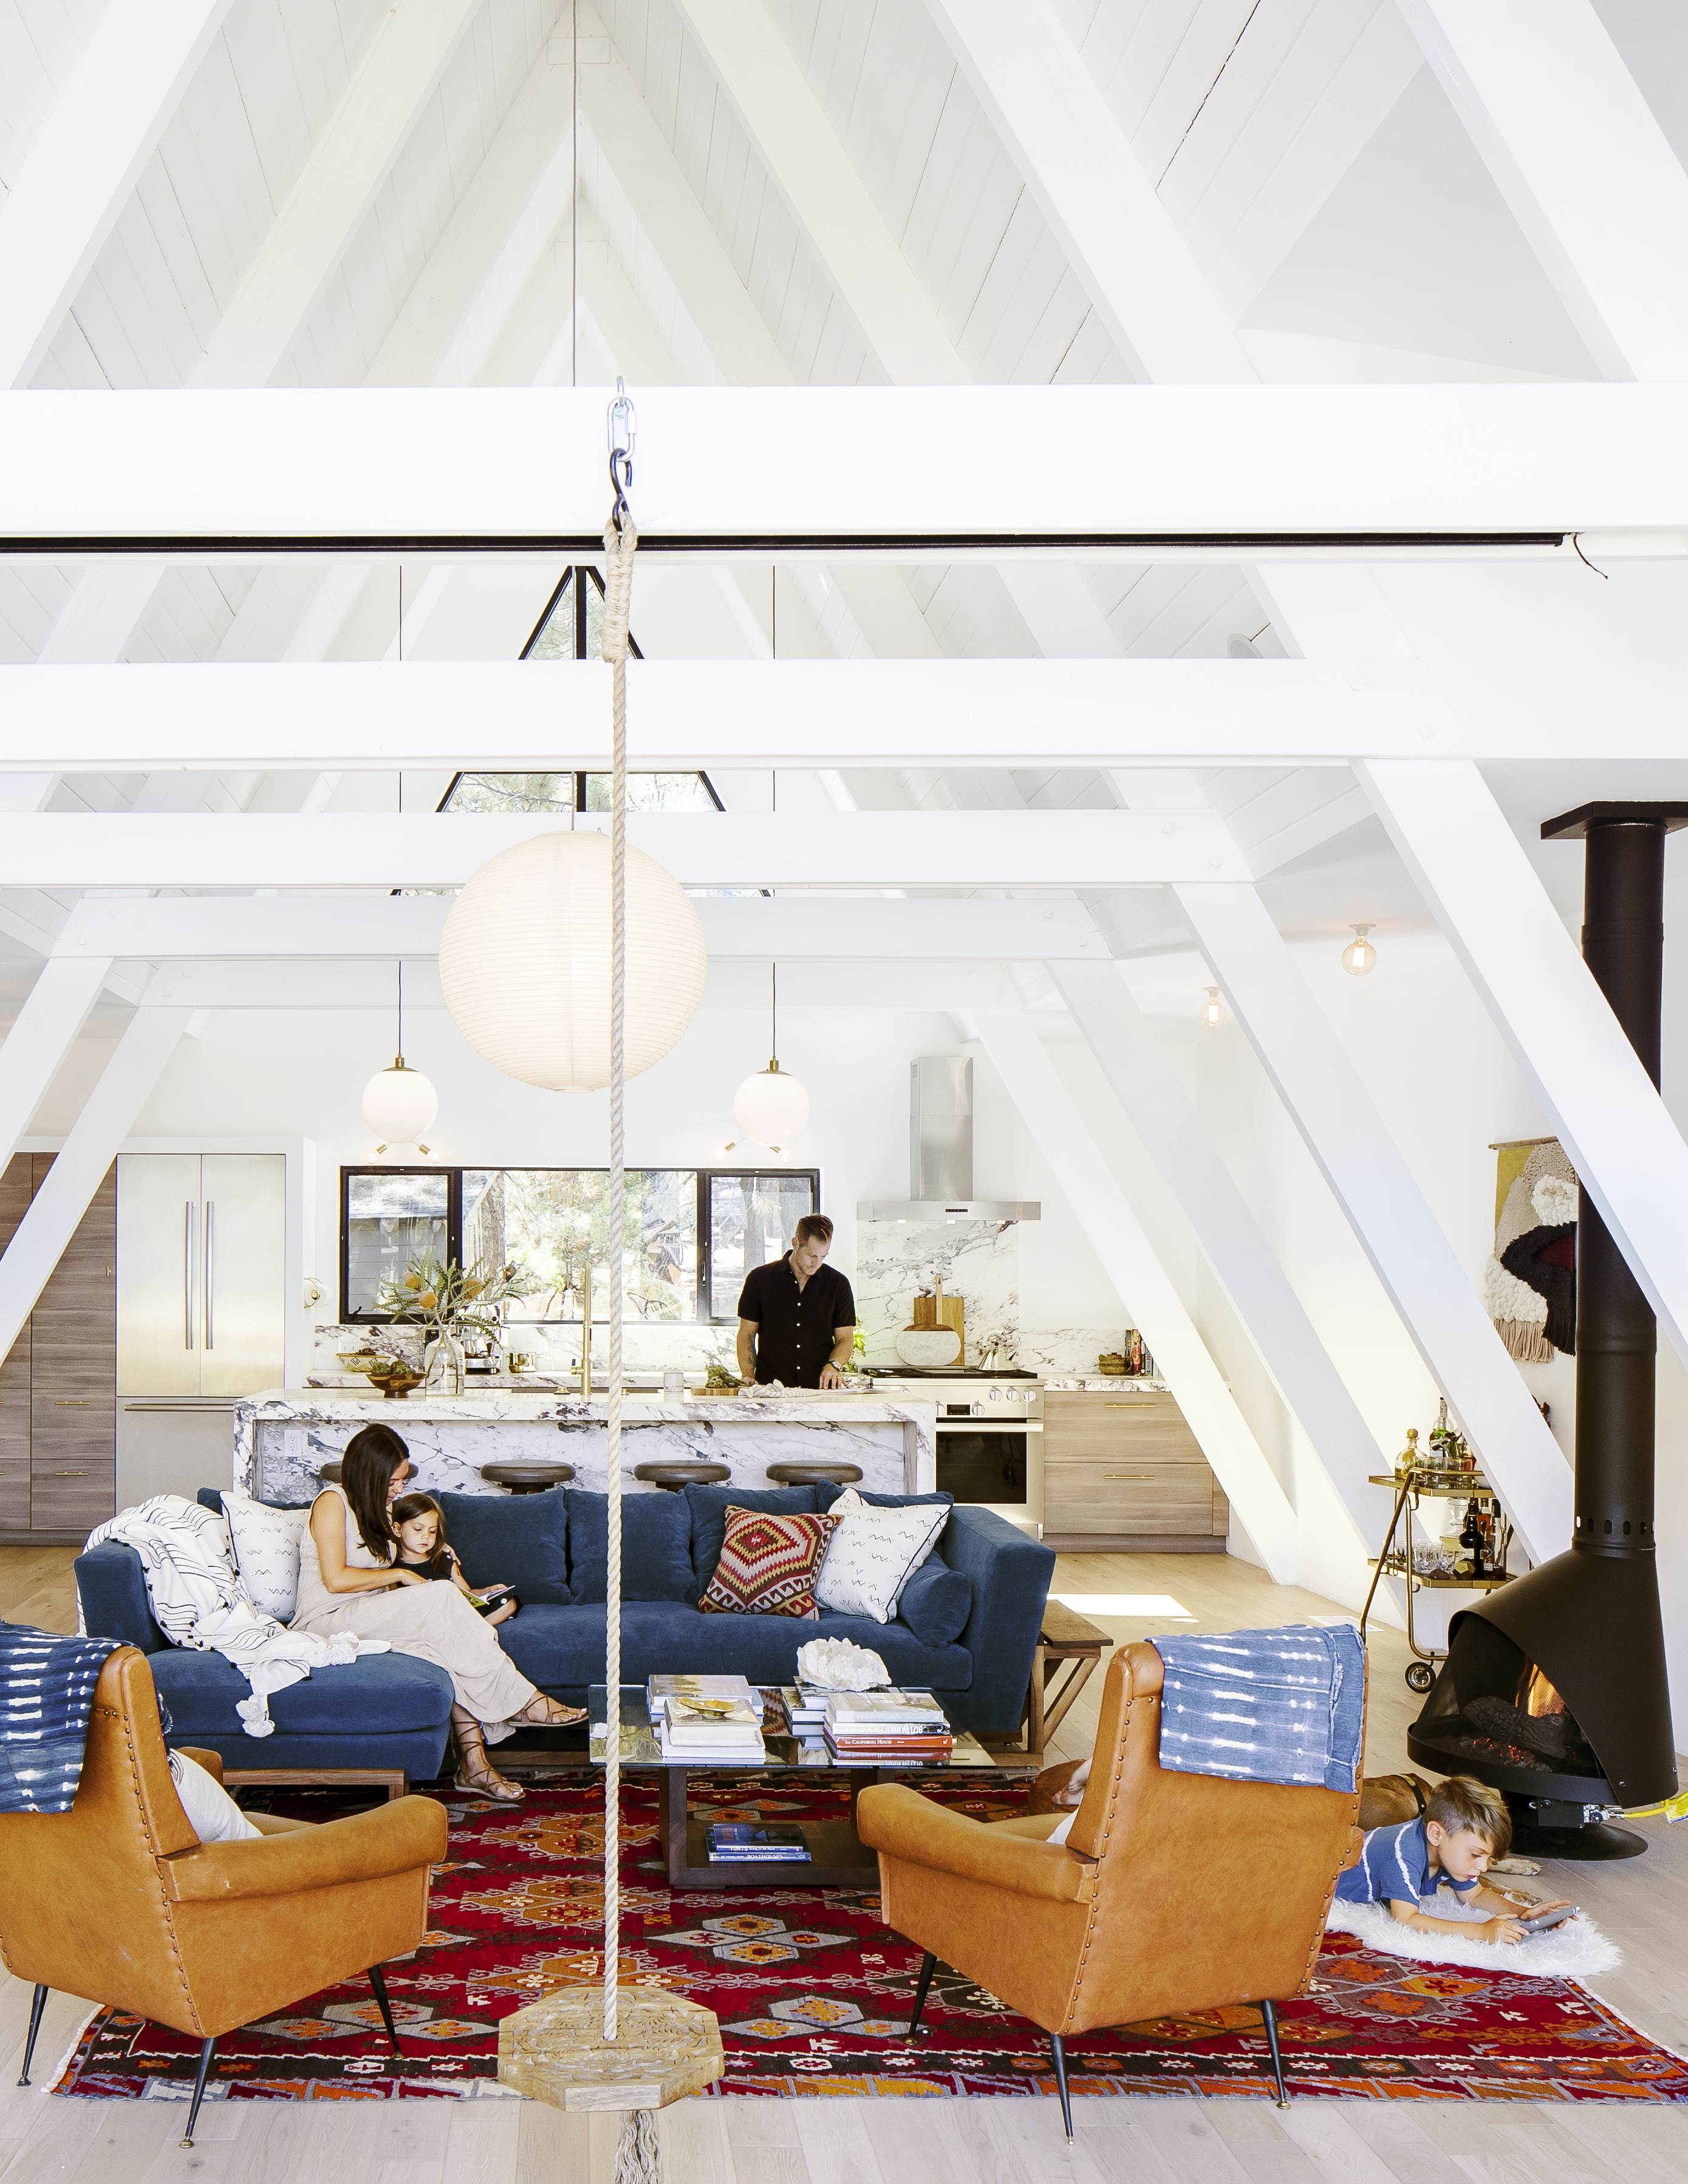 10 Best Investment Pieces for Your First Home - Sunset Magazine